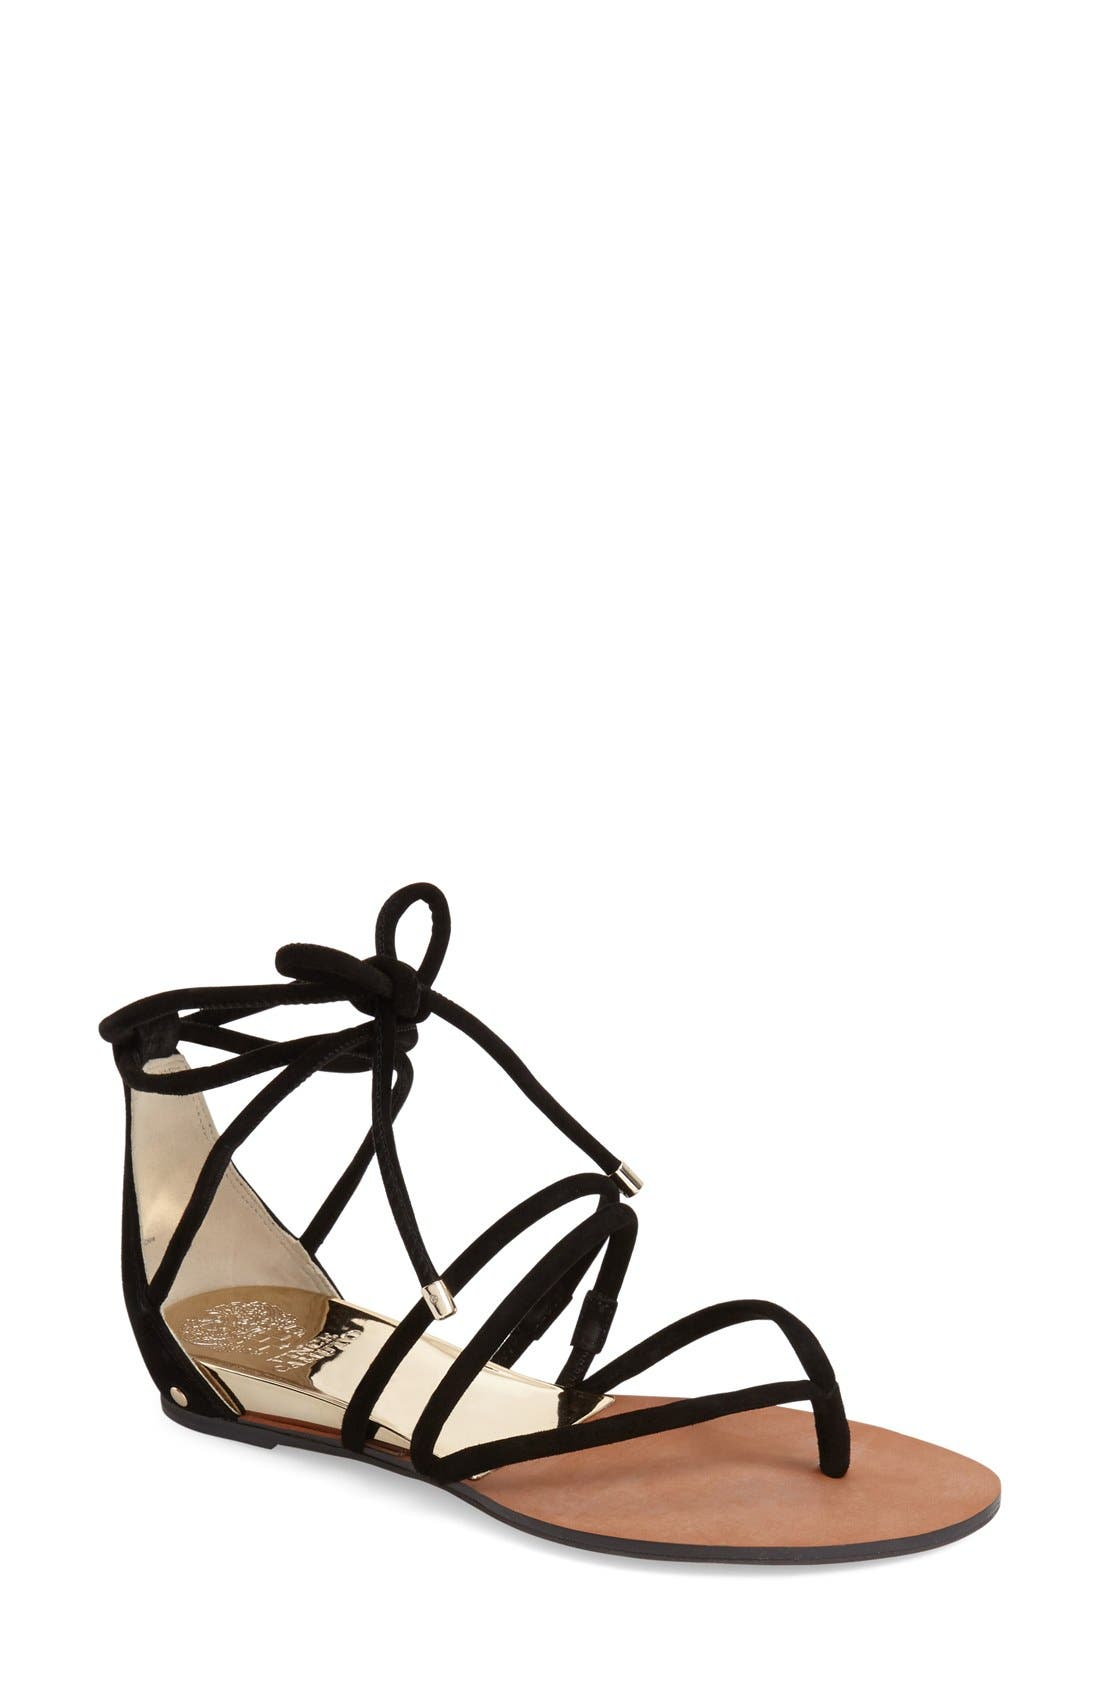 Main Image - Vince Camuto 'Adalson' Strappy Thong Sandal (Women)